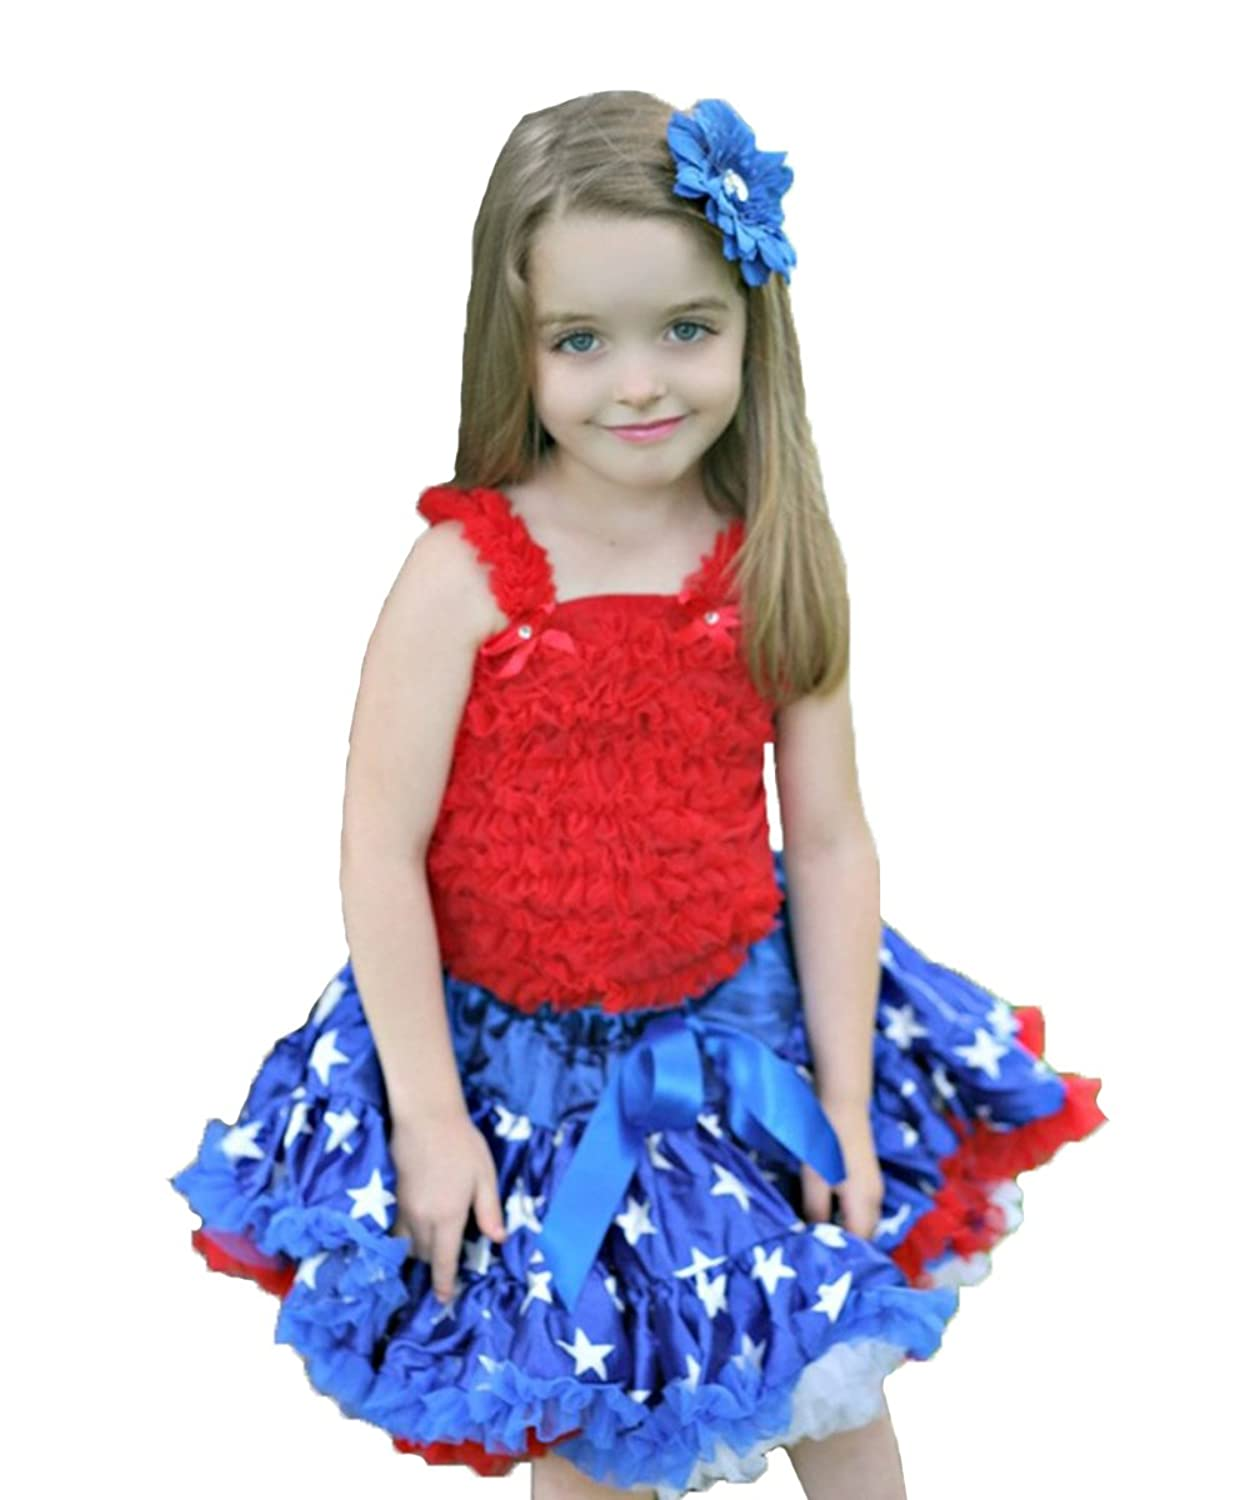 4th July Red Ruffle Top Royal Blue Patriotic Star Pettiskirt Outfit Girl 1-8y